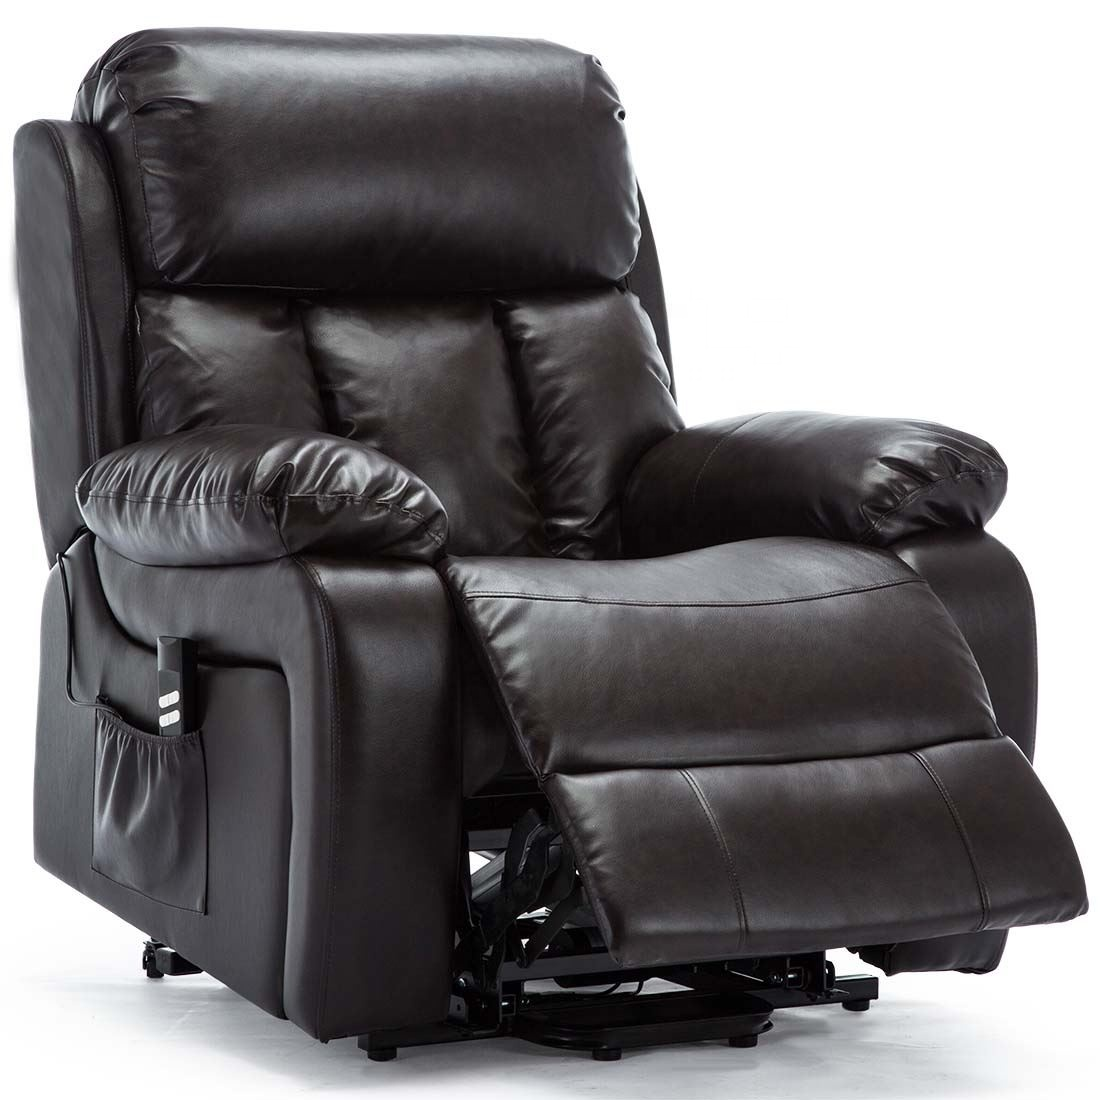 Factory Directly sales Dual Motor Riser Electric Leather Recliner Armchair Heated Massage chair